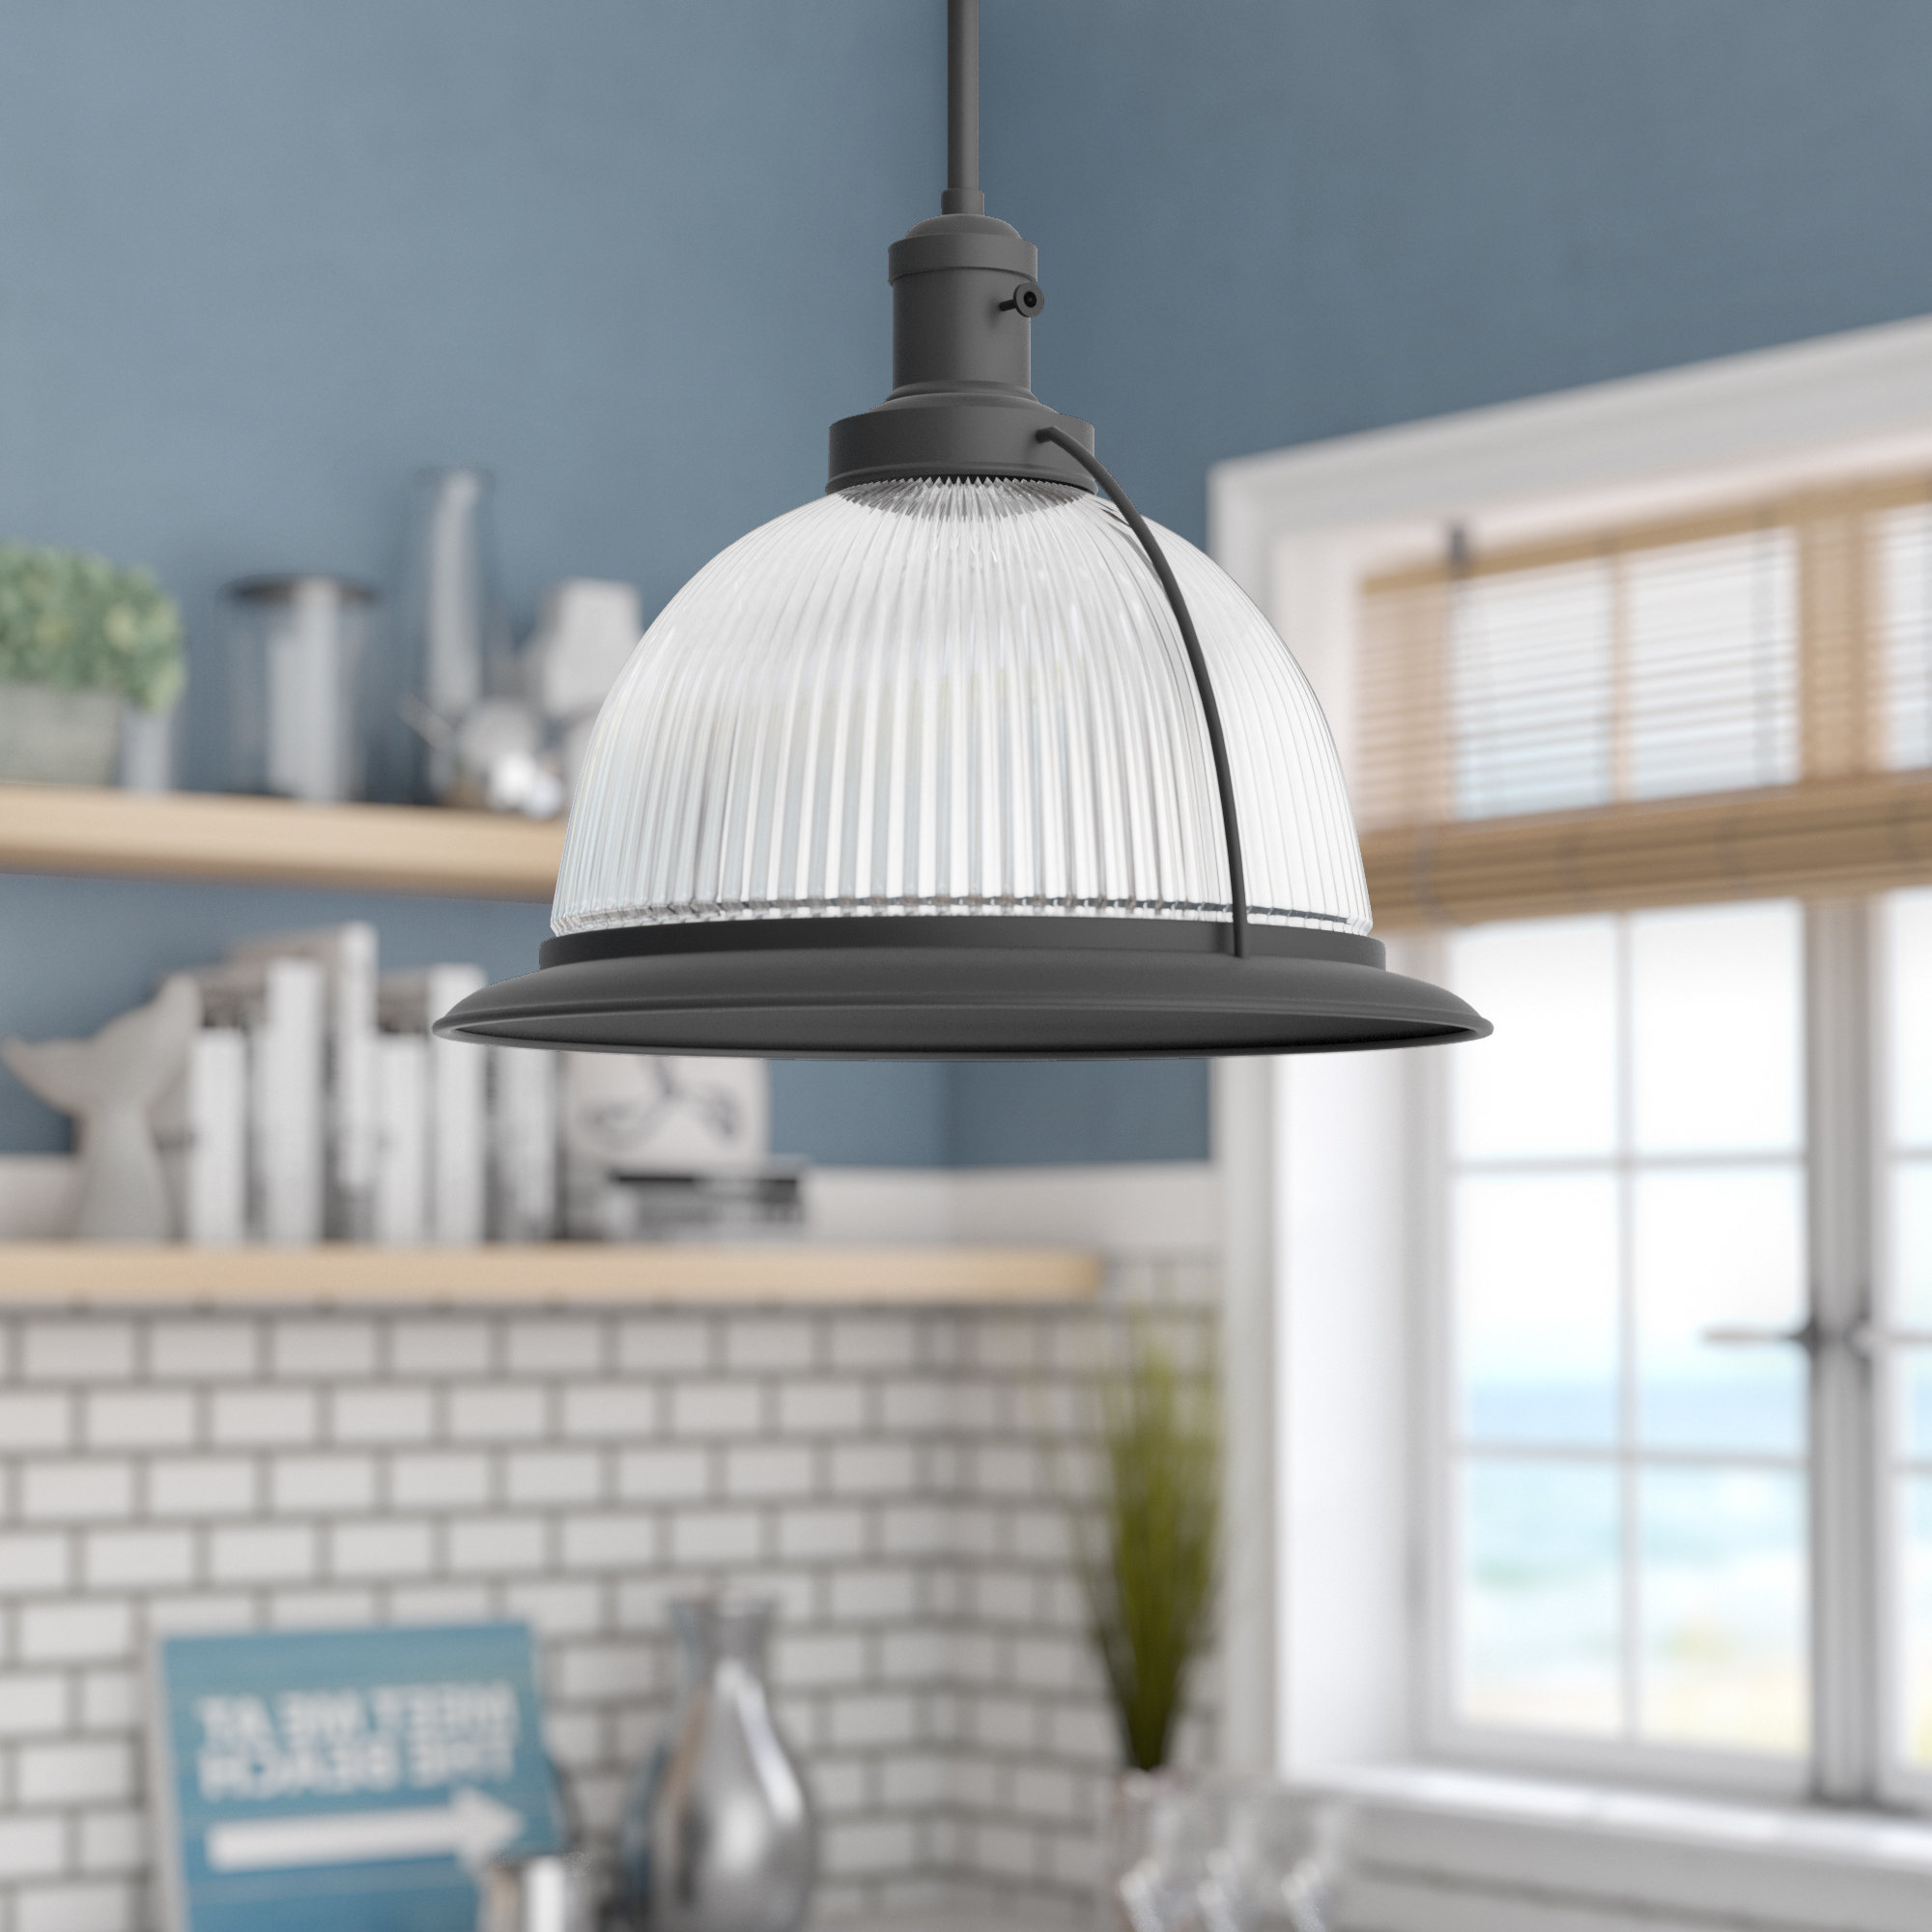 Delway 1 Light Single Dome Pendant With Favorite Granville 2 Light Single Dome Pendants (View 3 of 20)